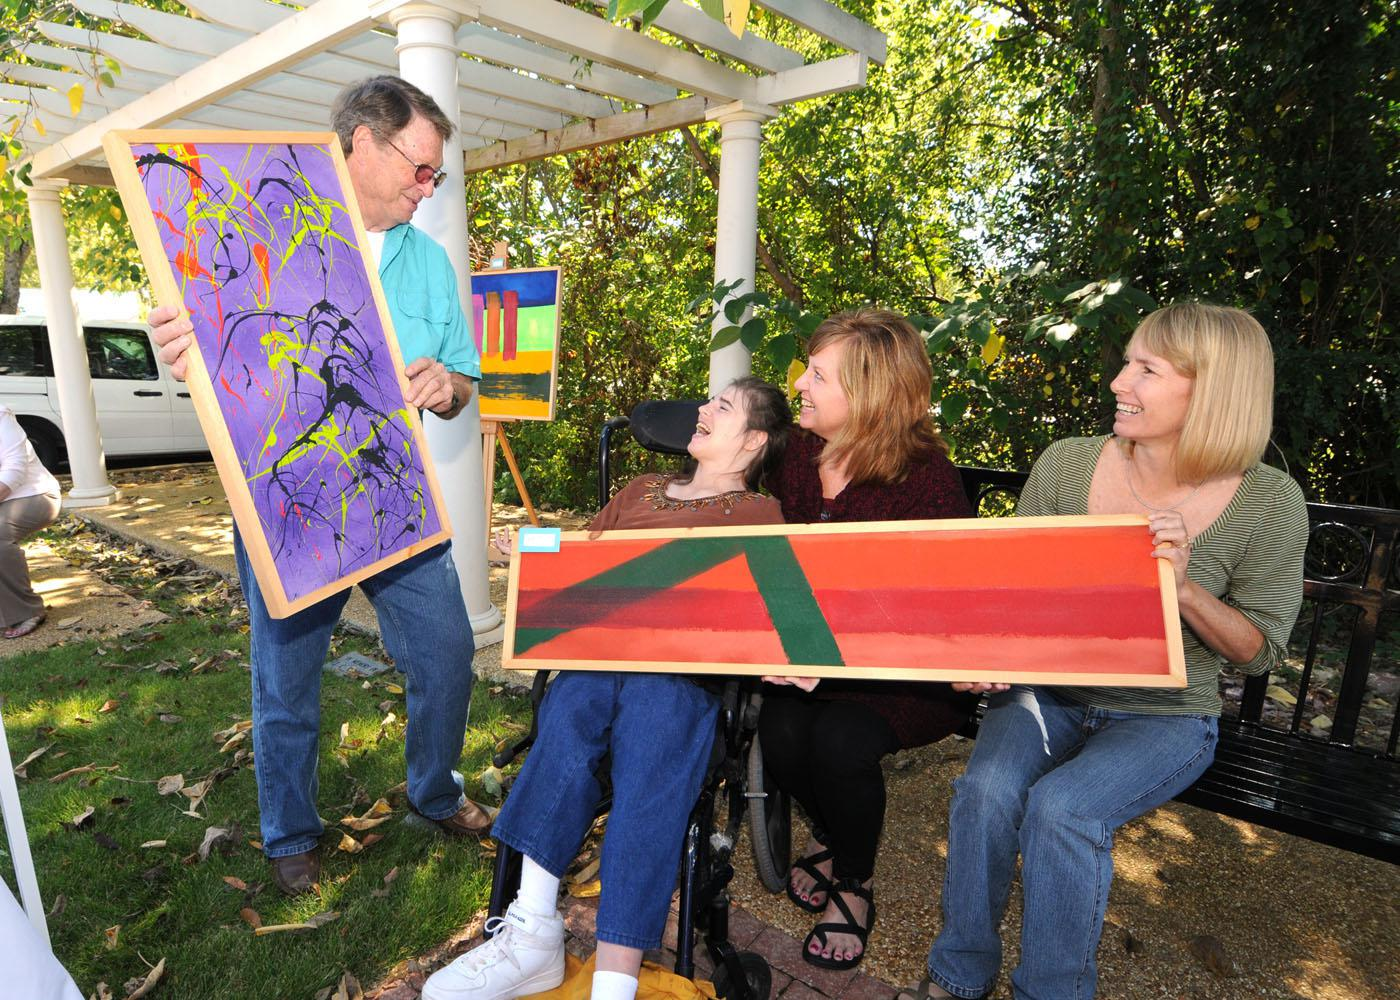 """Chickasaw County Master Gardener President John Walden, left, visits with """"EXPRESS Yourself"""" artist Amanda Williams of Ackerman during the Art in the Park event in downtown Houston. Judy Duncan and Barbara Boydston of the T.K. Martin Center at Mississippi State University brought artwork and clients to the event, which was co-sponsored by the Master Gardeners, the Mississippi Homemaker Volunteers and the MSU Alumni Association's Chickasaw County chapter. (Photo by Scott Corey)"""